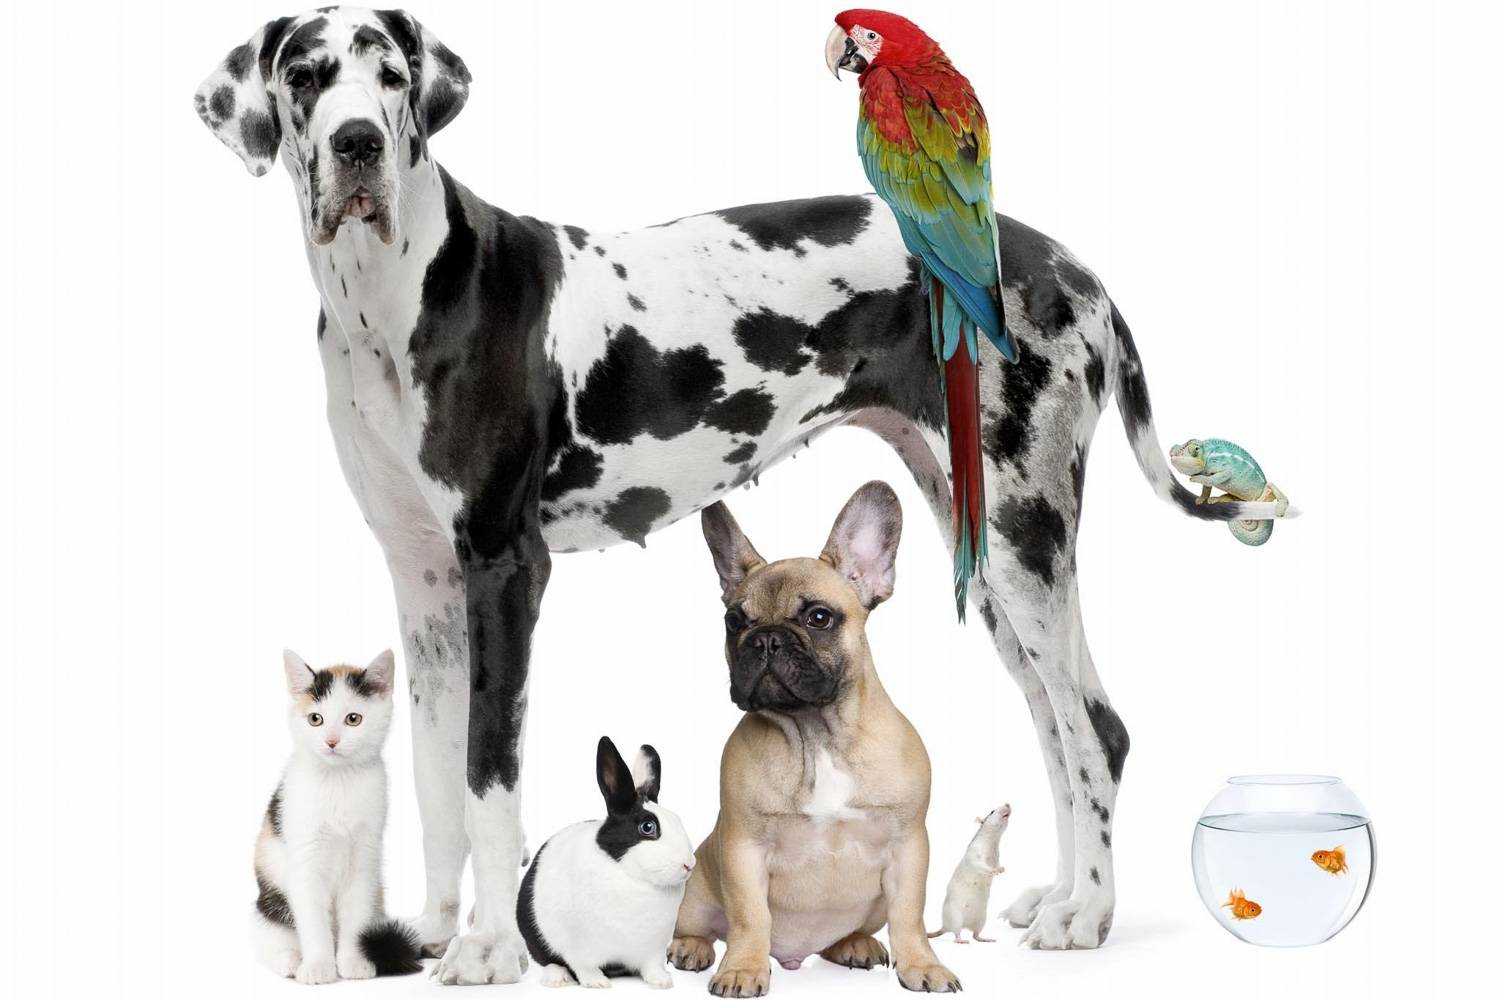 Image of a group of animals including dog, rabbit, fish, cat, mouse and bird. (Image credit: wallpaperplay.com)